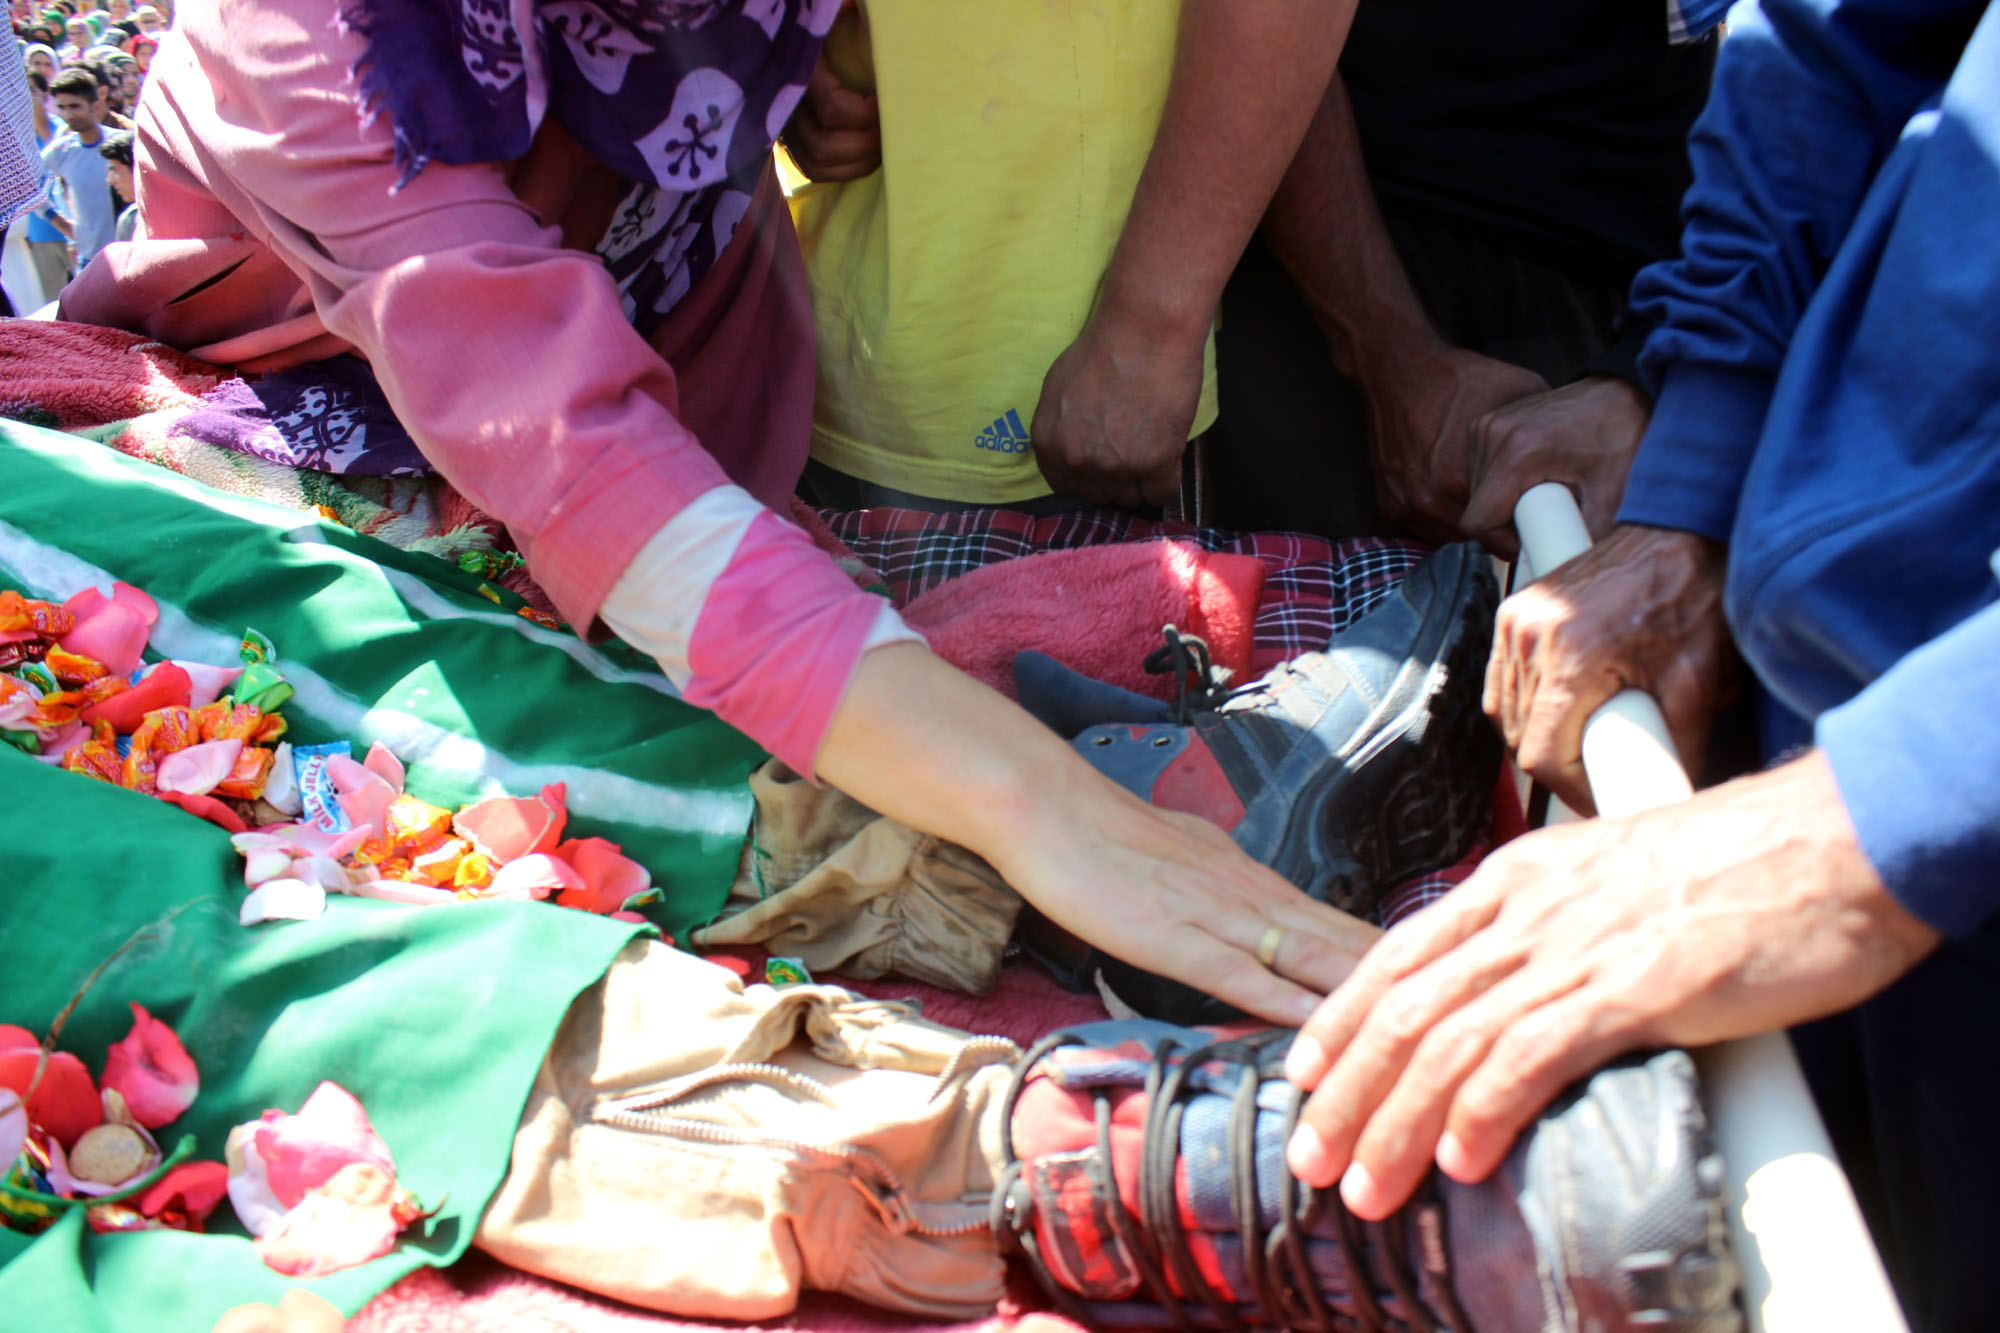 A local woman touches the feet of Bashir Lashkari at his funeral in Sopshali Kokernag. Credit: Vikar Syed